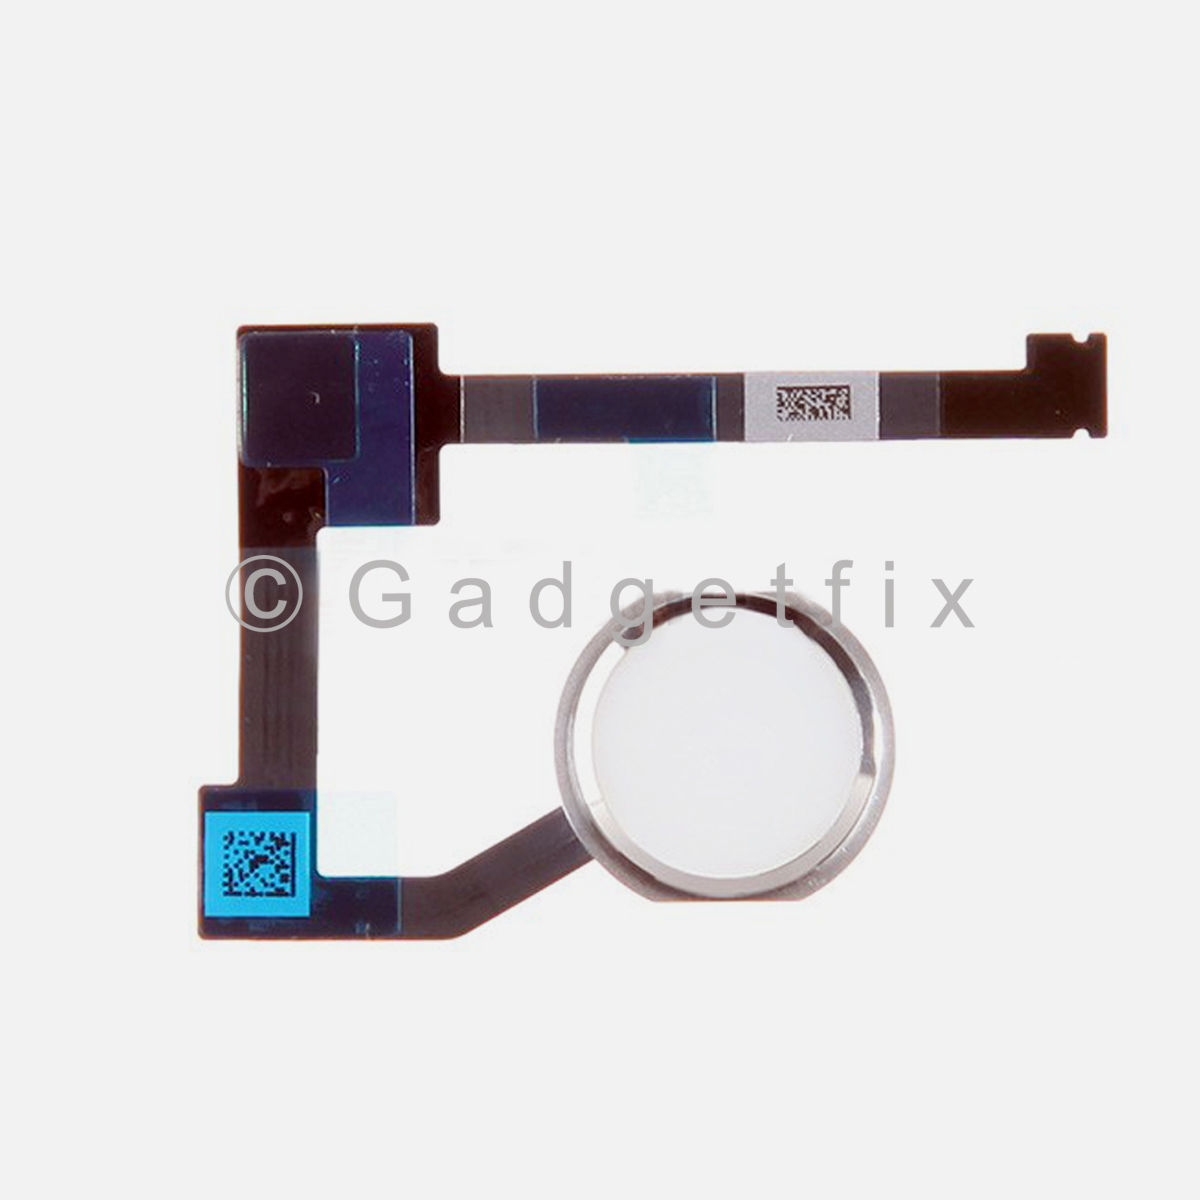 Silver Home Menu Button Flex Cable Replacement Part for iPad Pro 12.9 A1584 A165